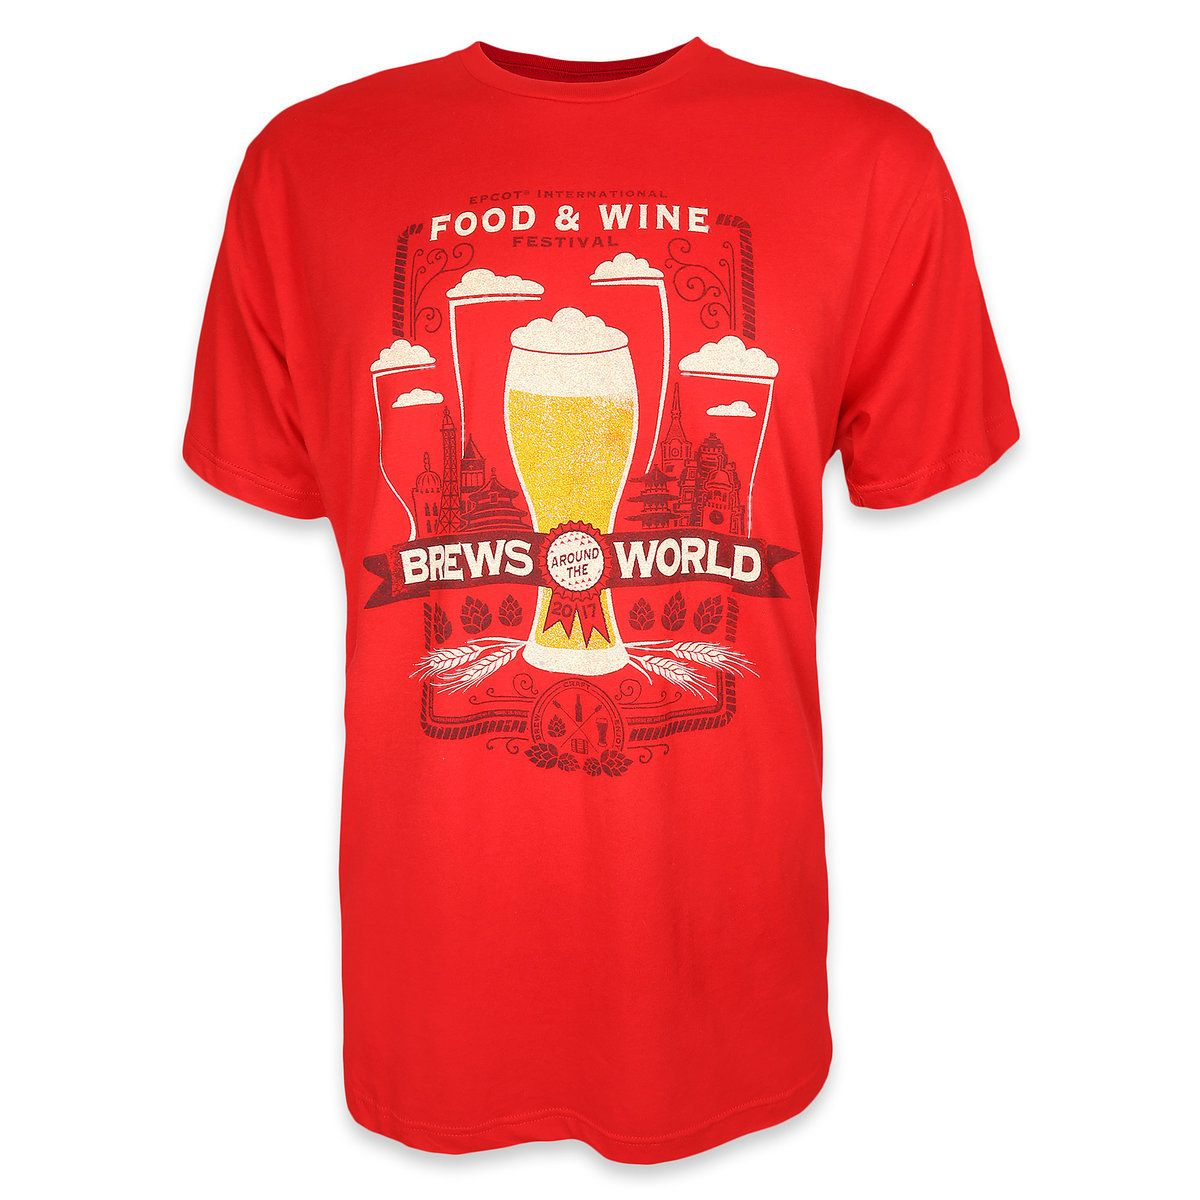 Epcot International Food Wine Festival Brews Around The World 2017 T Shirt For Men Adulting Shirts Mens Tshirts Shirts For Teens